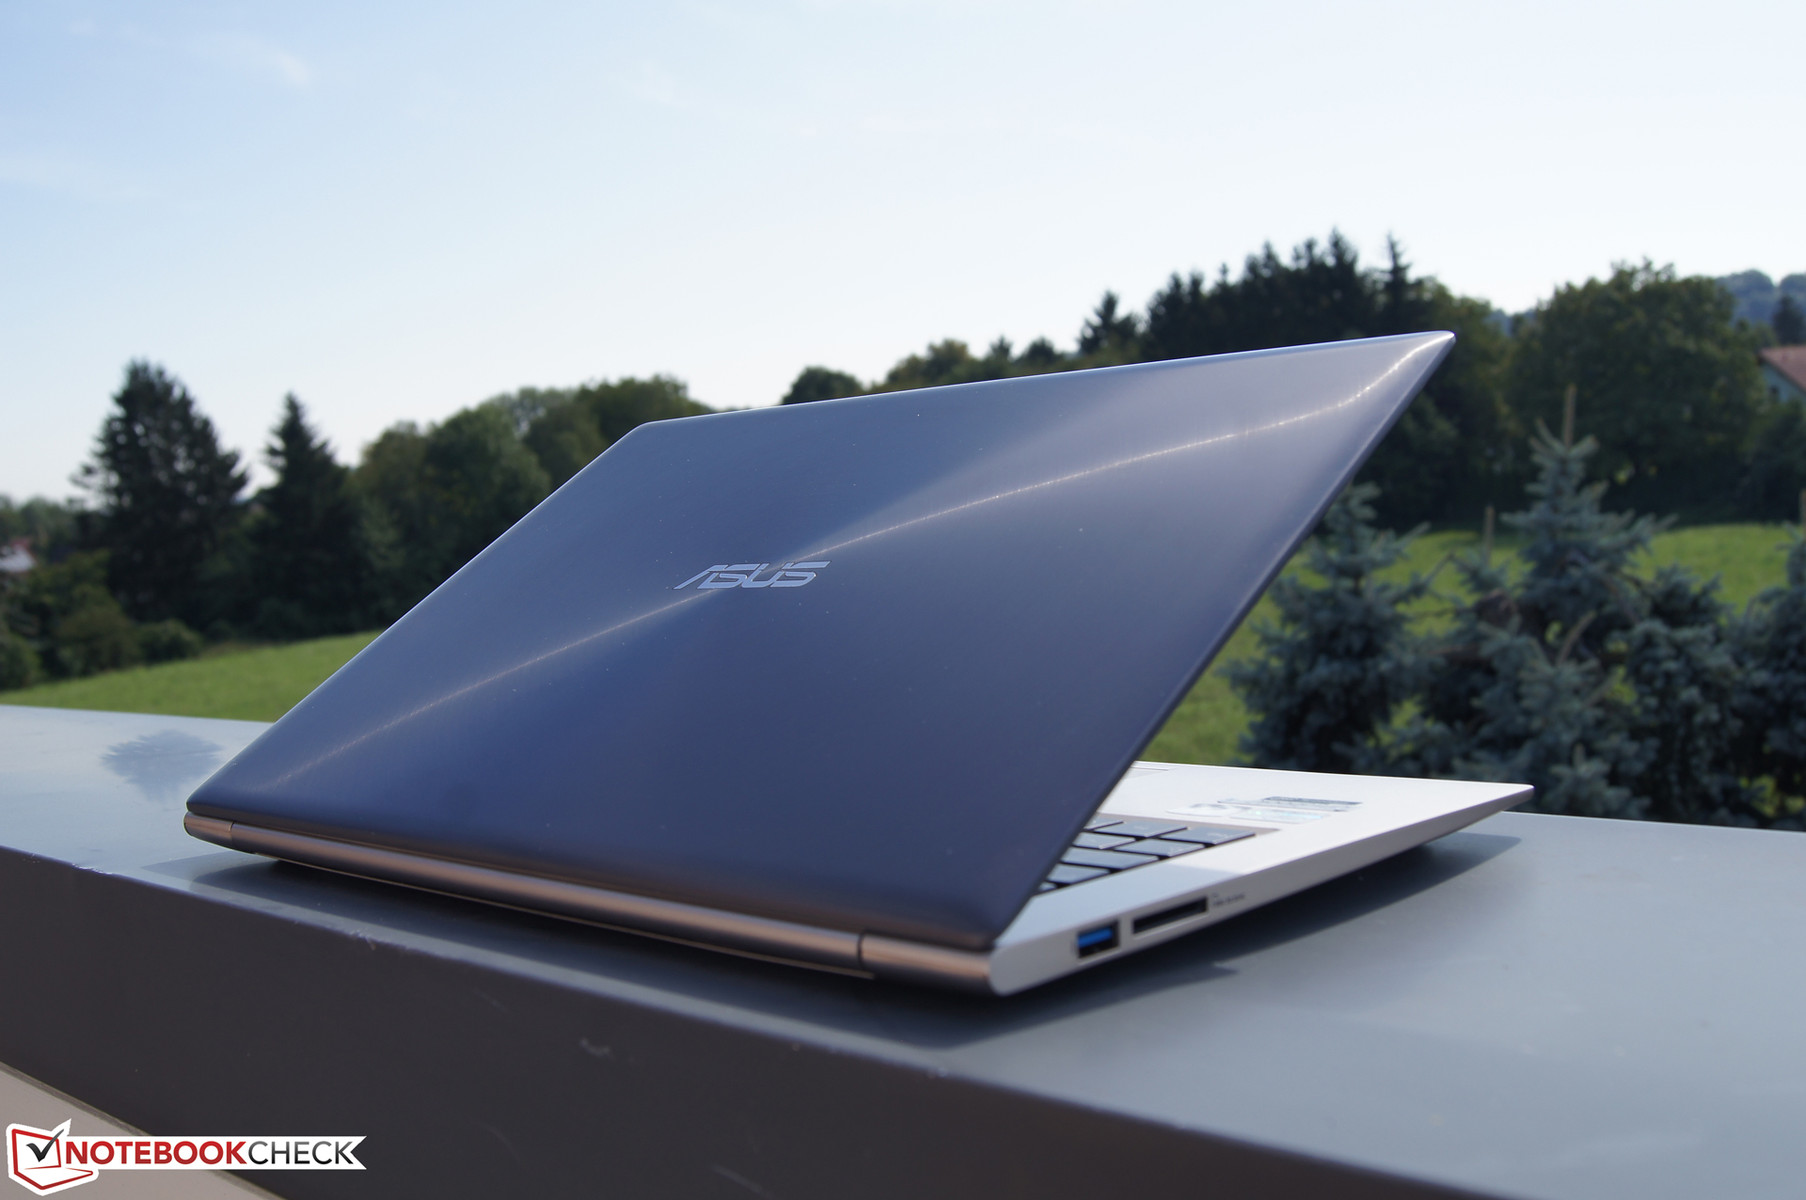 Asus ZENBOOK UX32A Driver for Windows 7